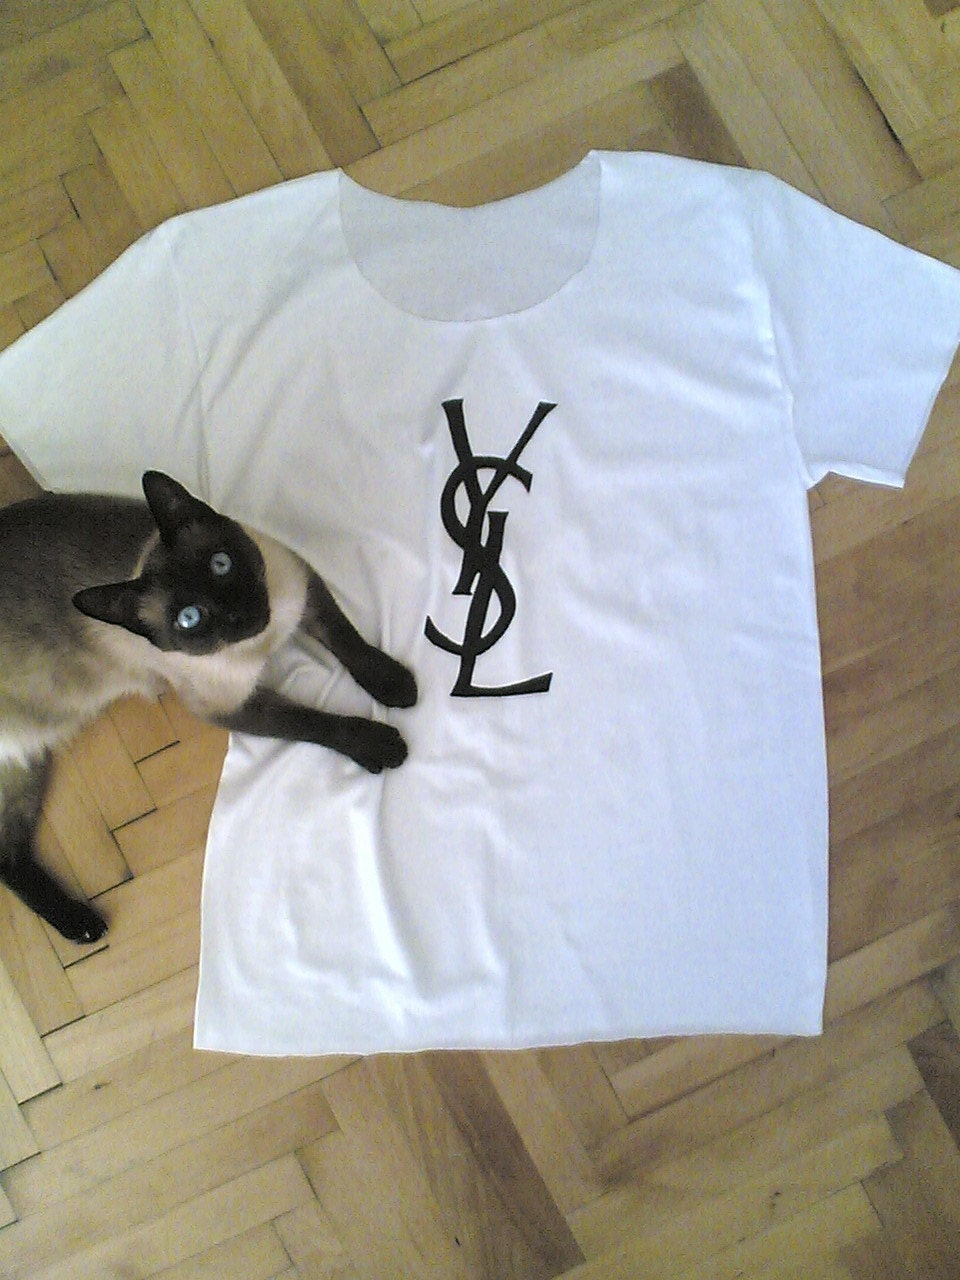 YSL Inspired Stylish Basic White Tee